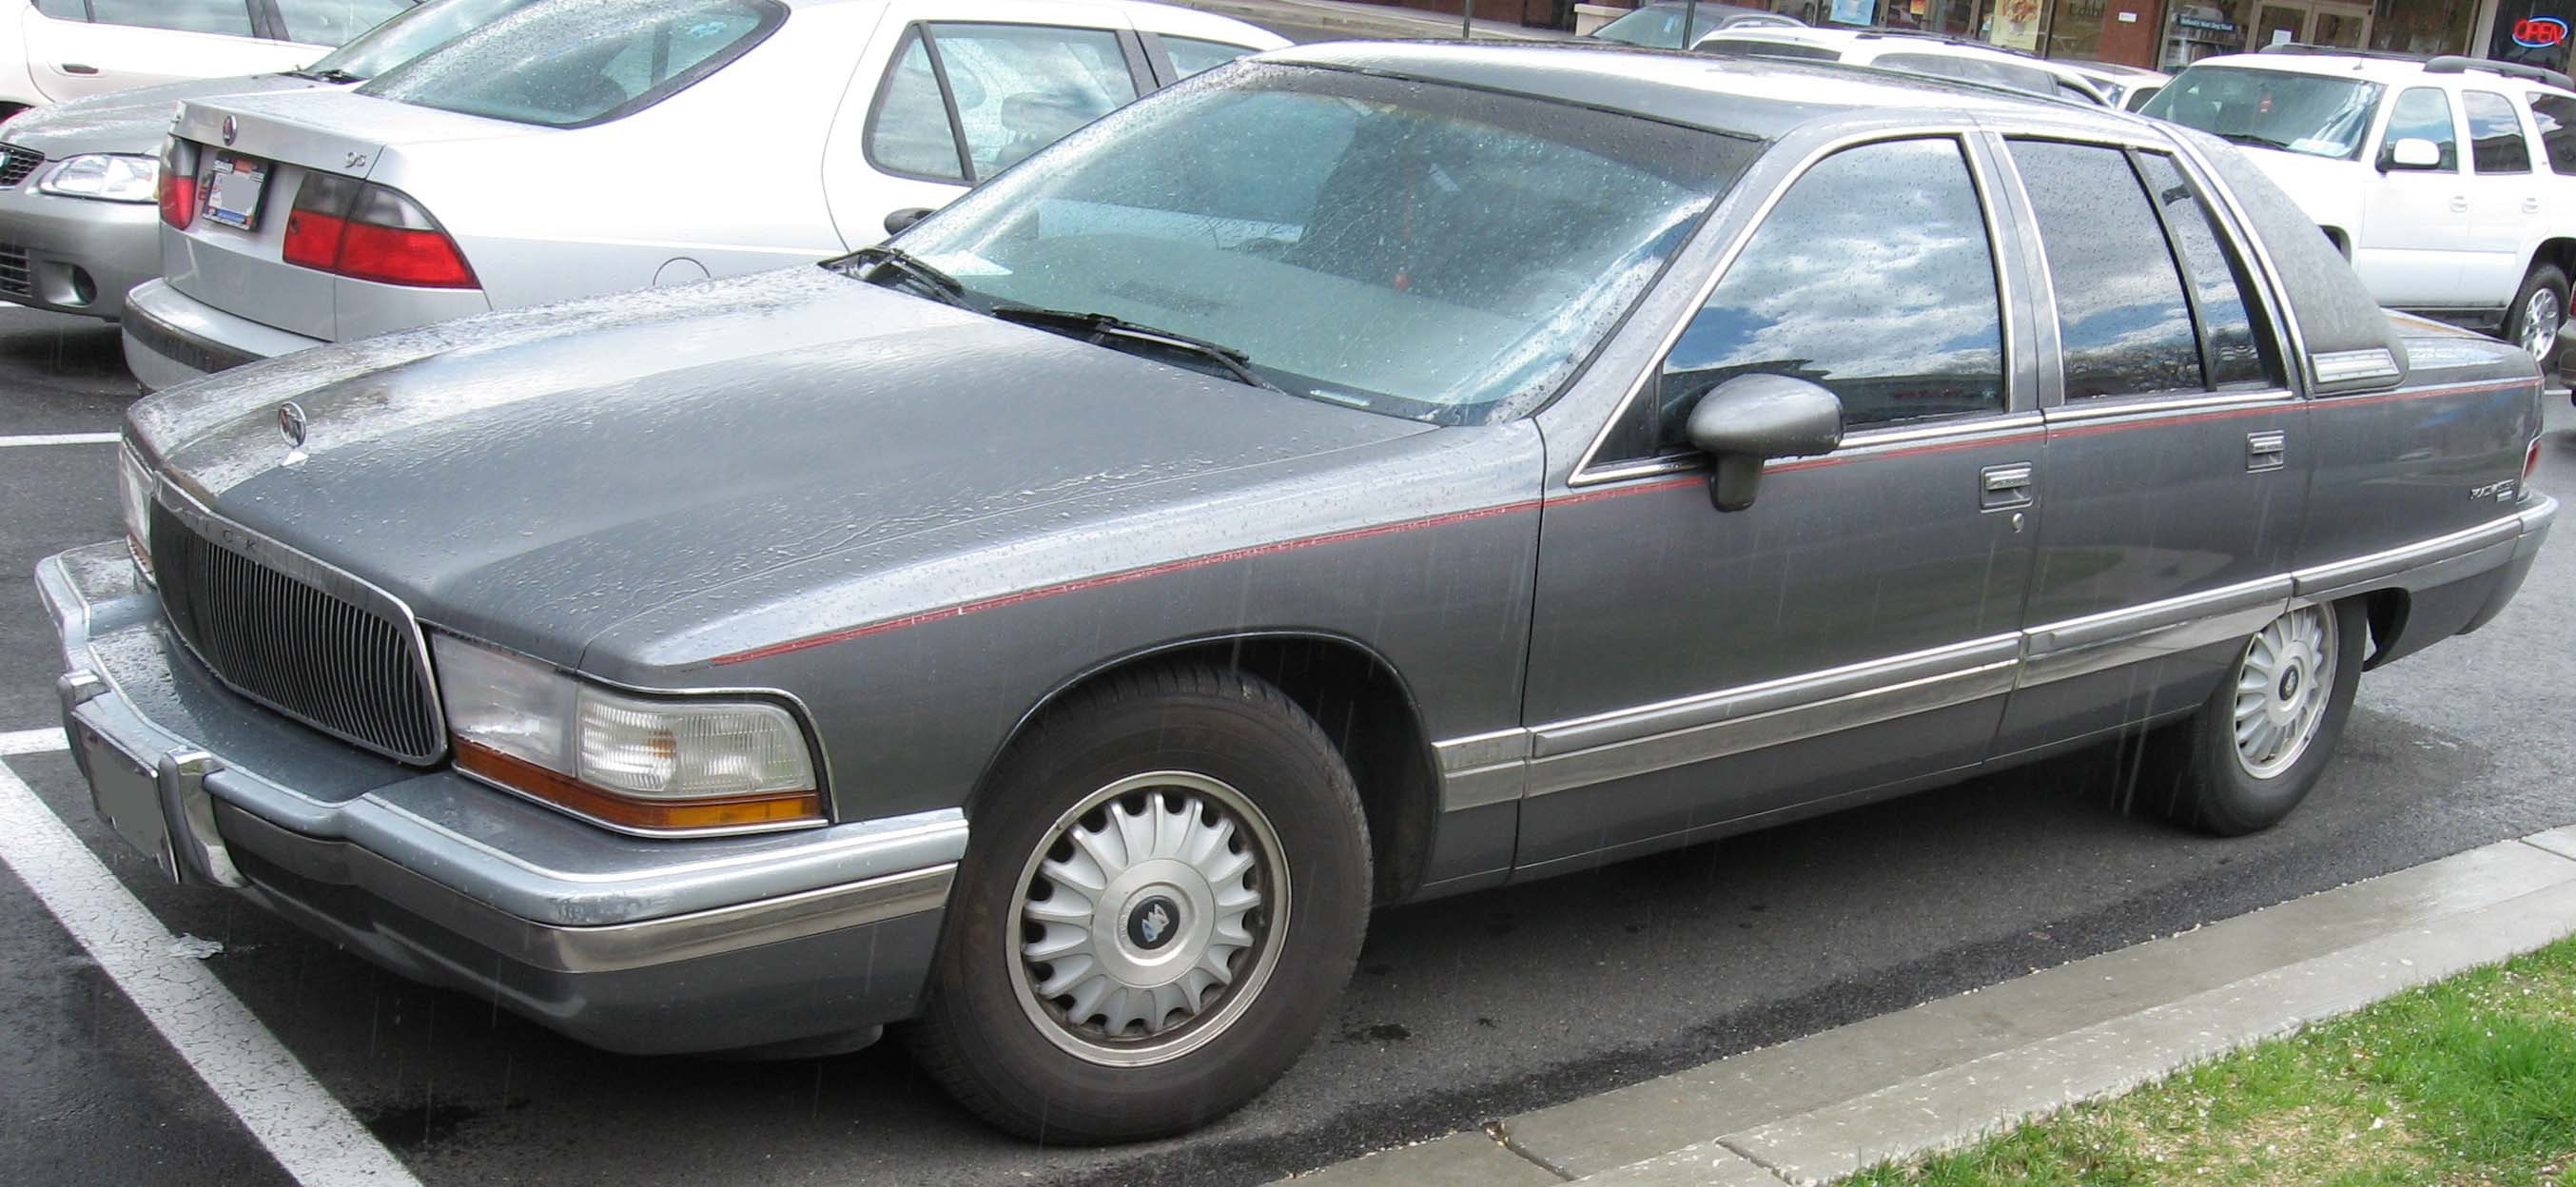 Cars buick roadmaster 1991